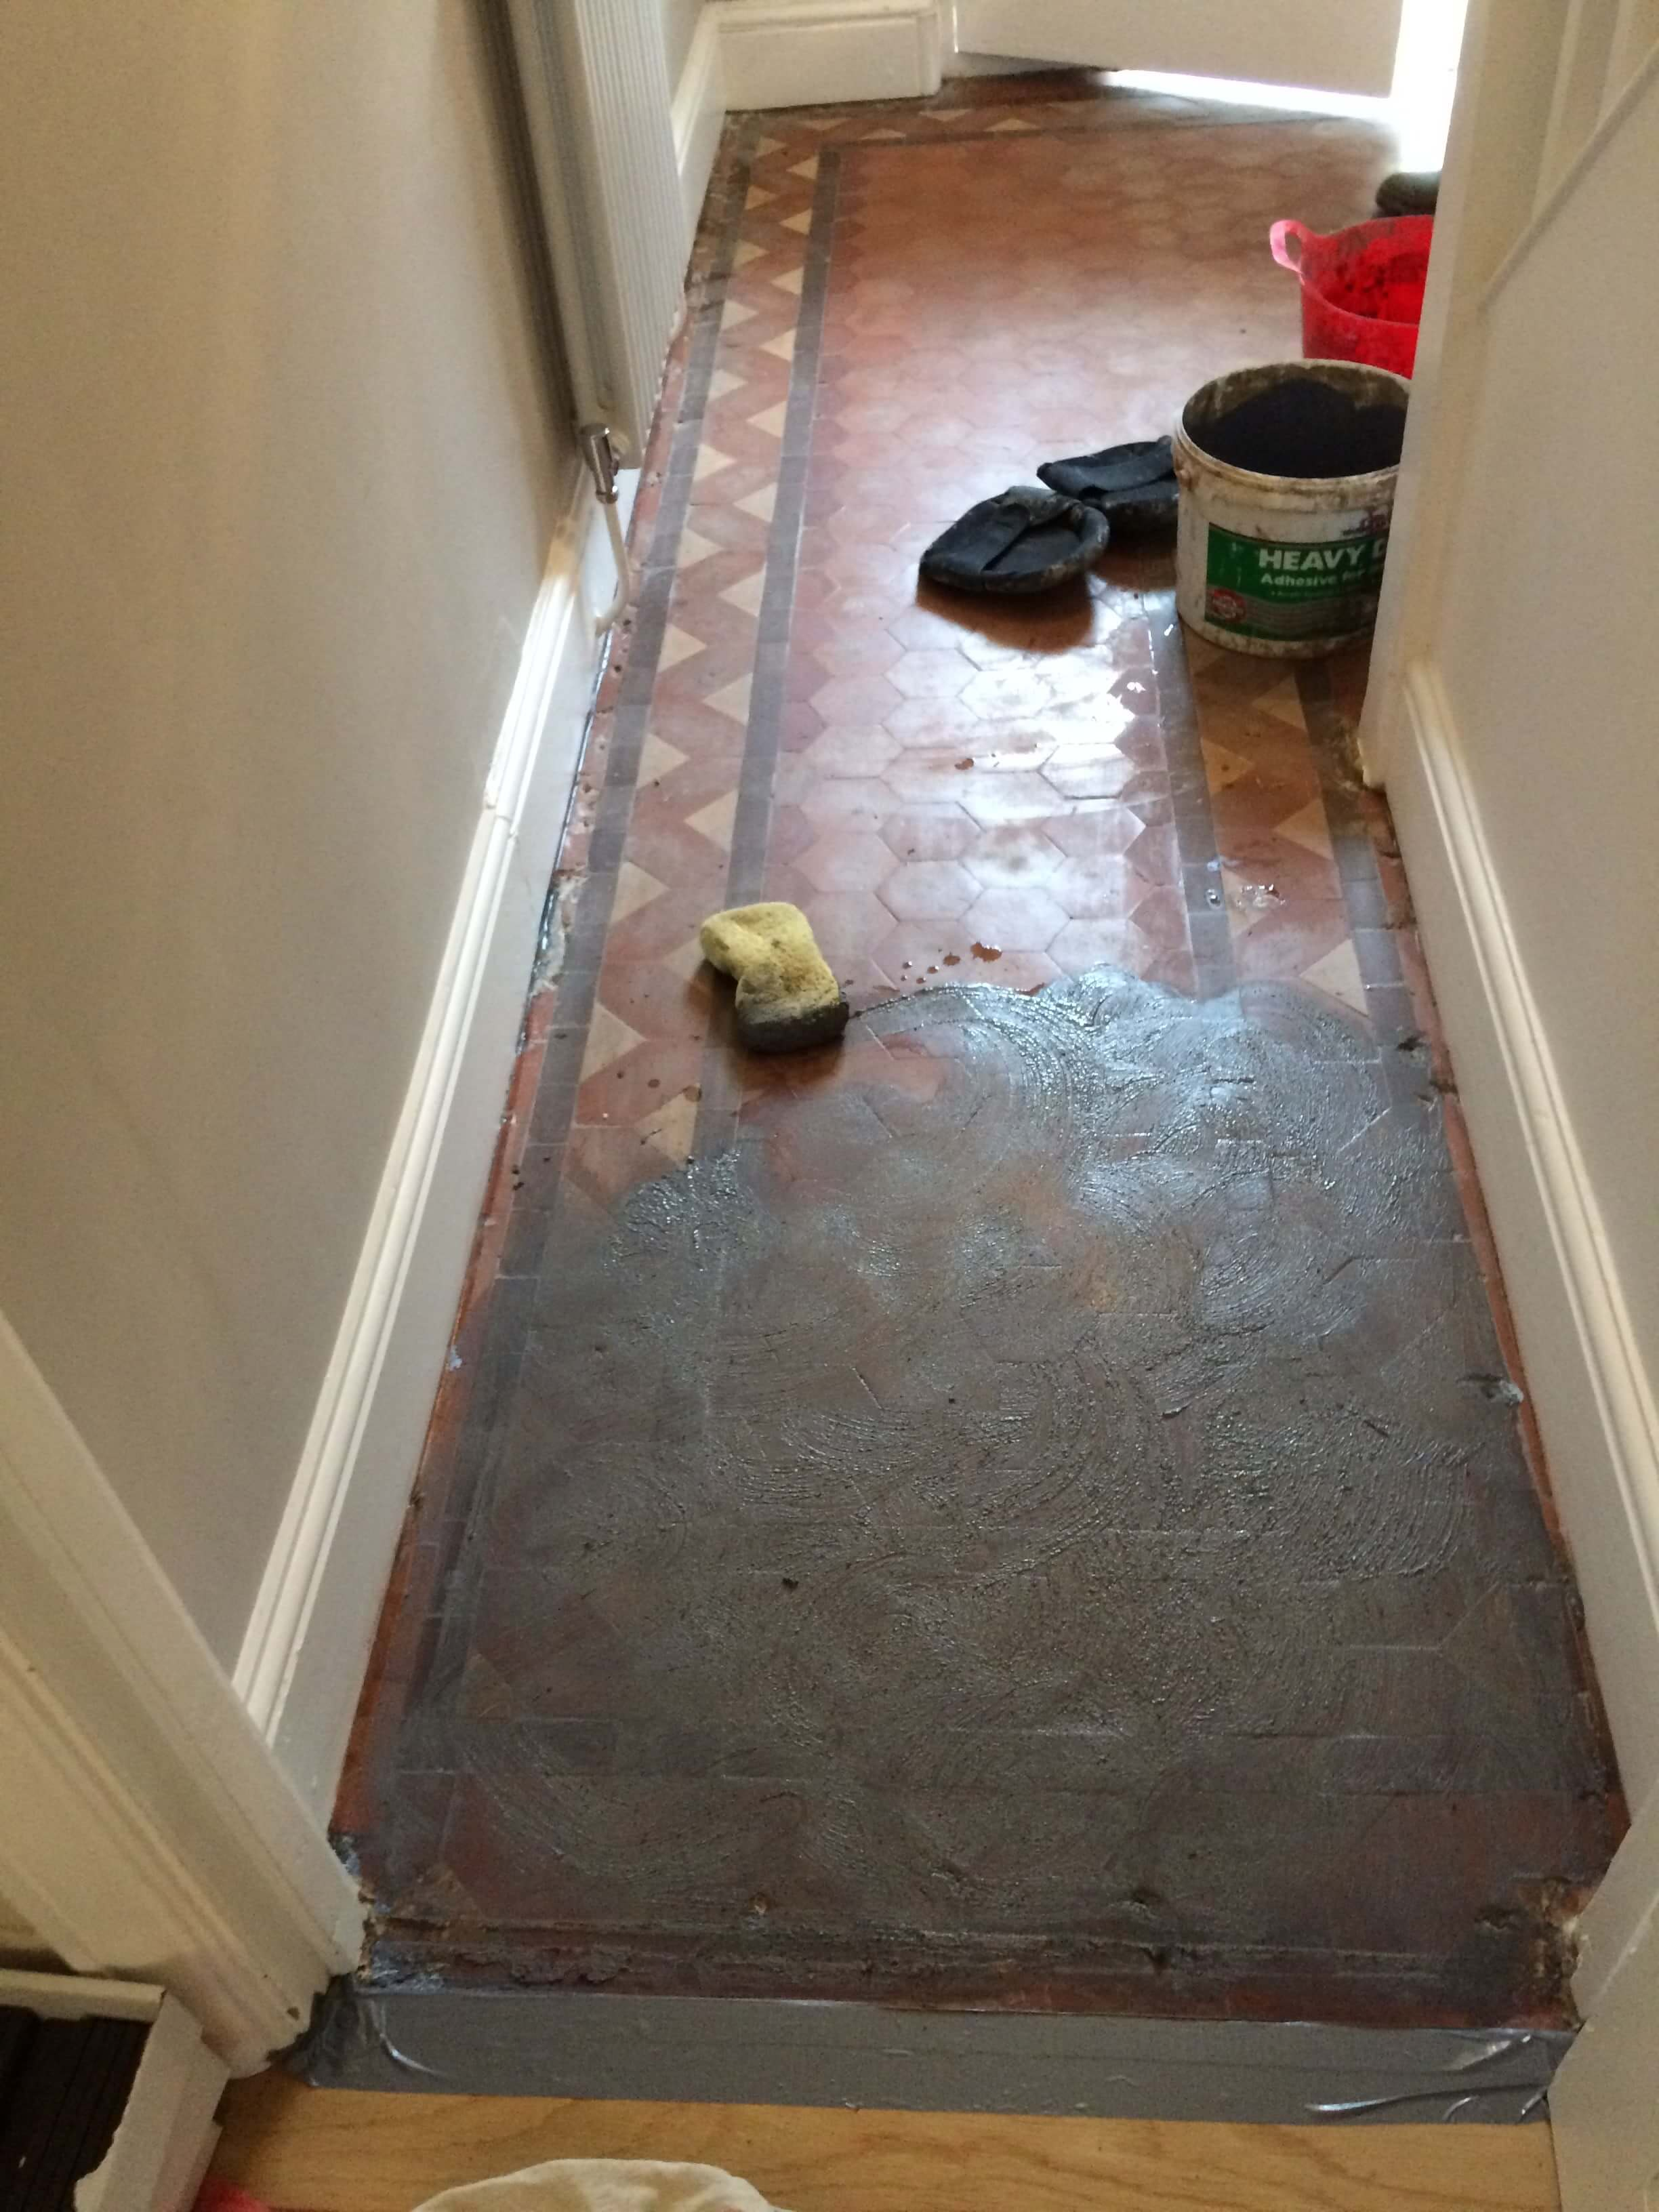 Victorian floor guide victorian floors after the floor is thoroughly cleaned and allowed to dry a slurry coat of neat primer and leveller powder is mixed to form a thick liquidpaste and applied dailygadgetfo Image collections